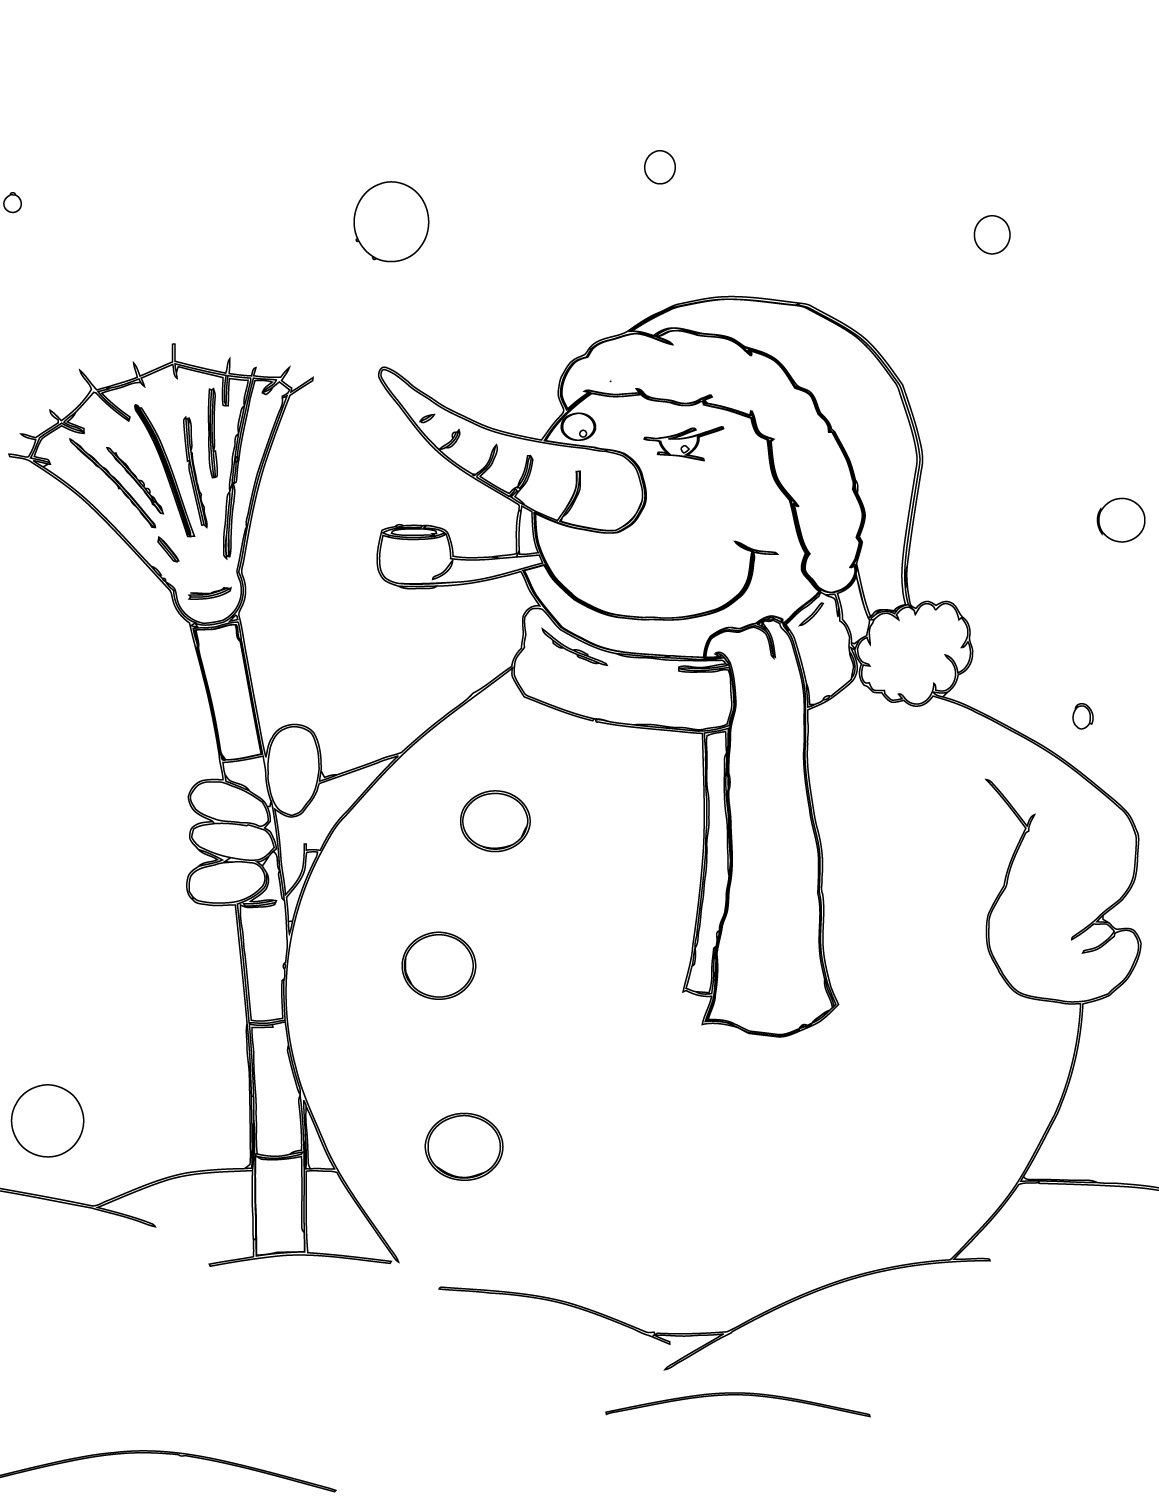 Snowman with Pipe and Broom